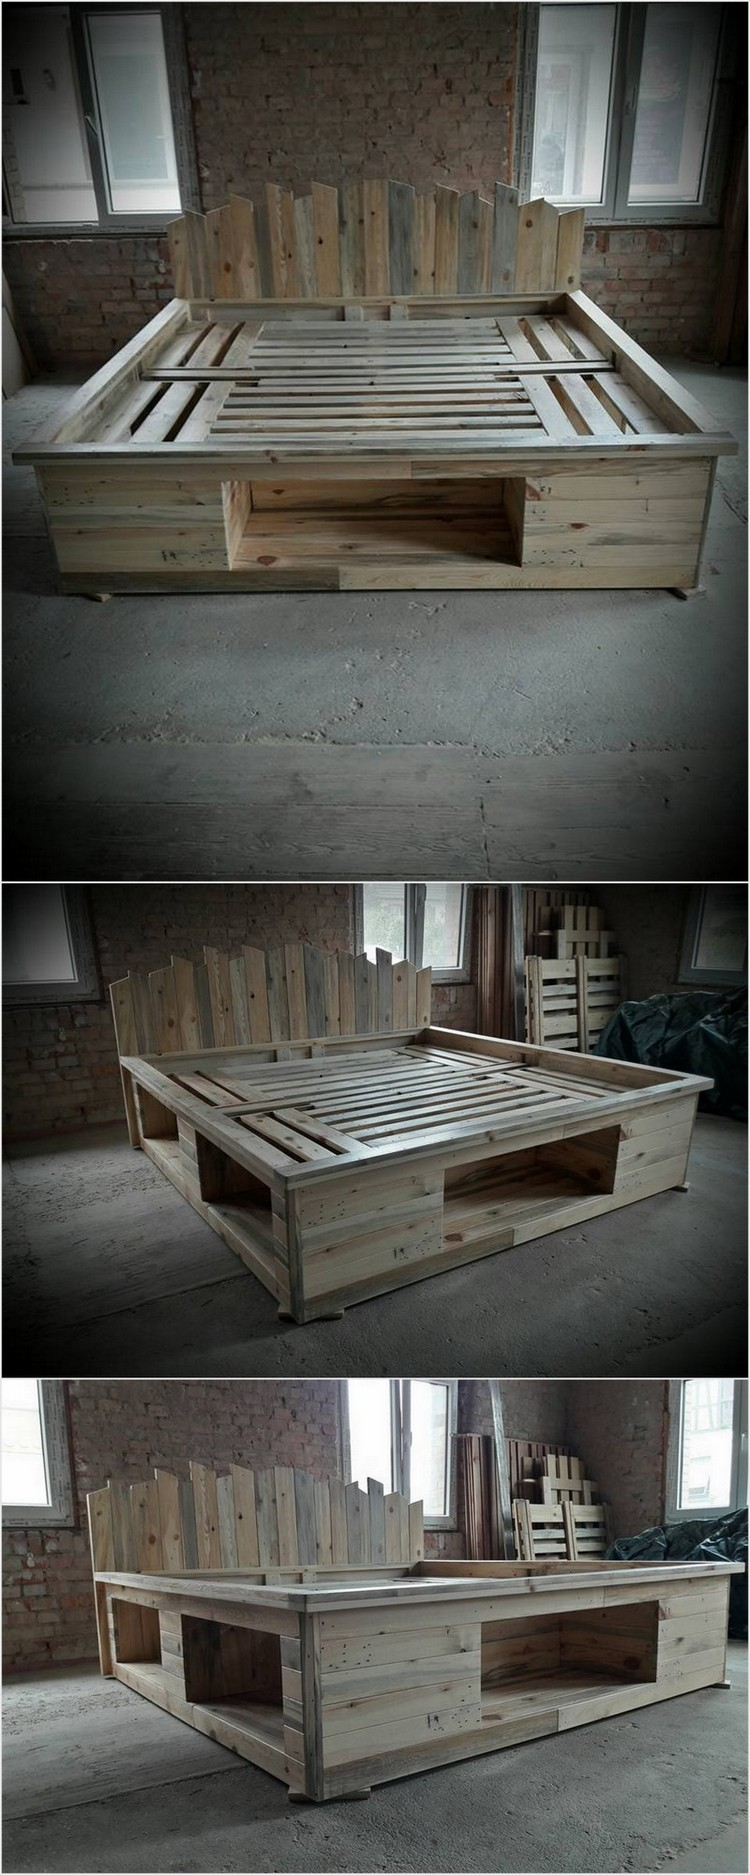 Price worthy awesome shipping pallet recycling ideas for Pallet bed frame with side tables